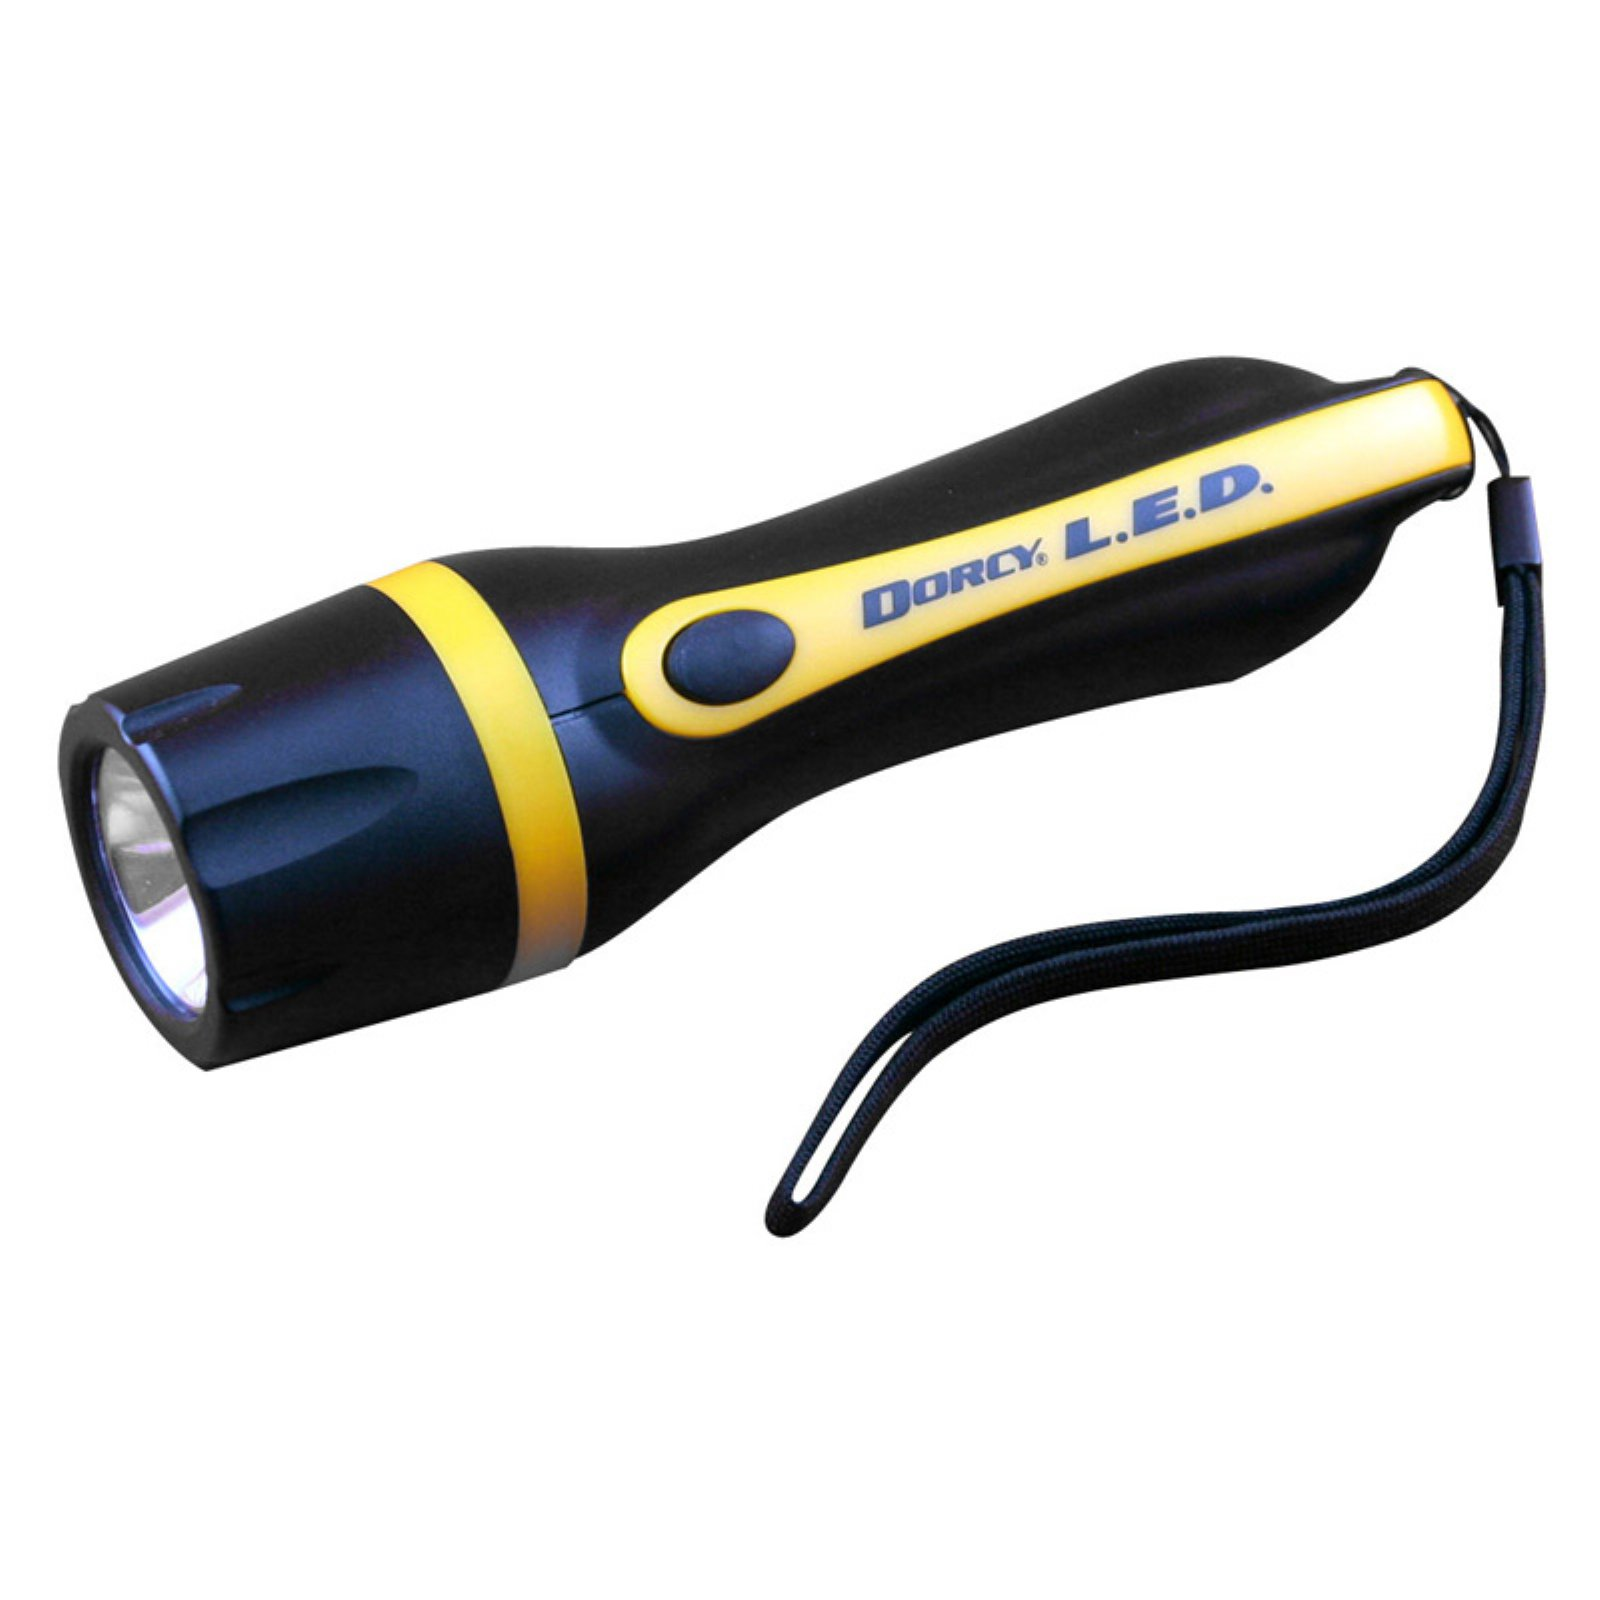 Dorcy LED Flashlight with IPX4 Waterproof Design, 330 Lumens